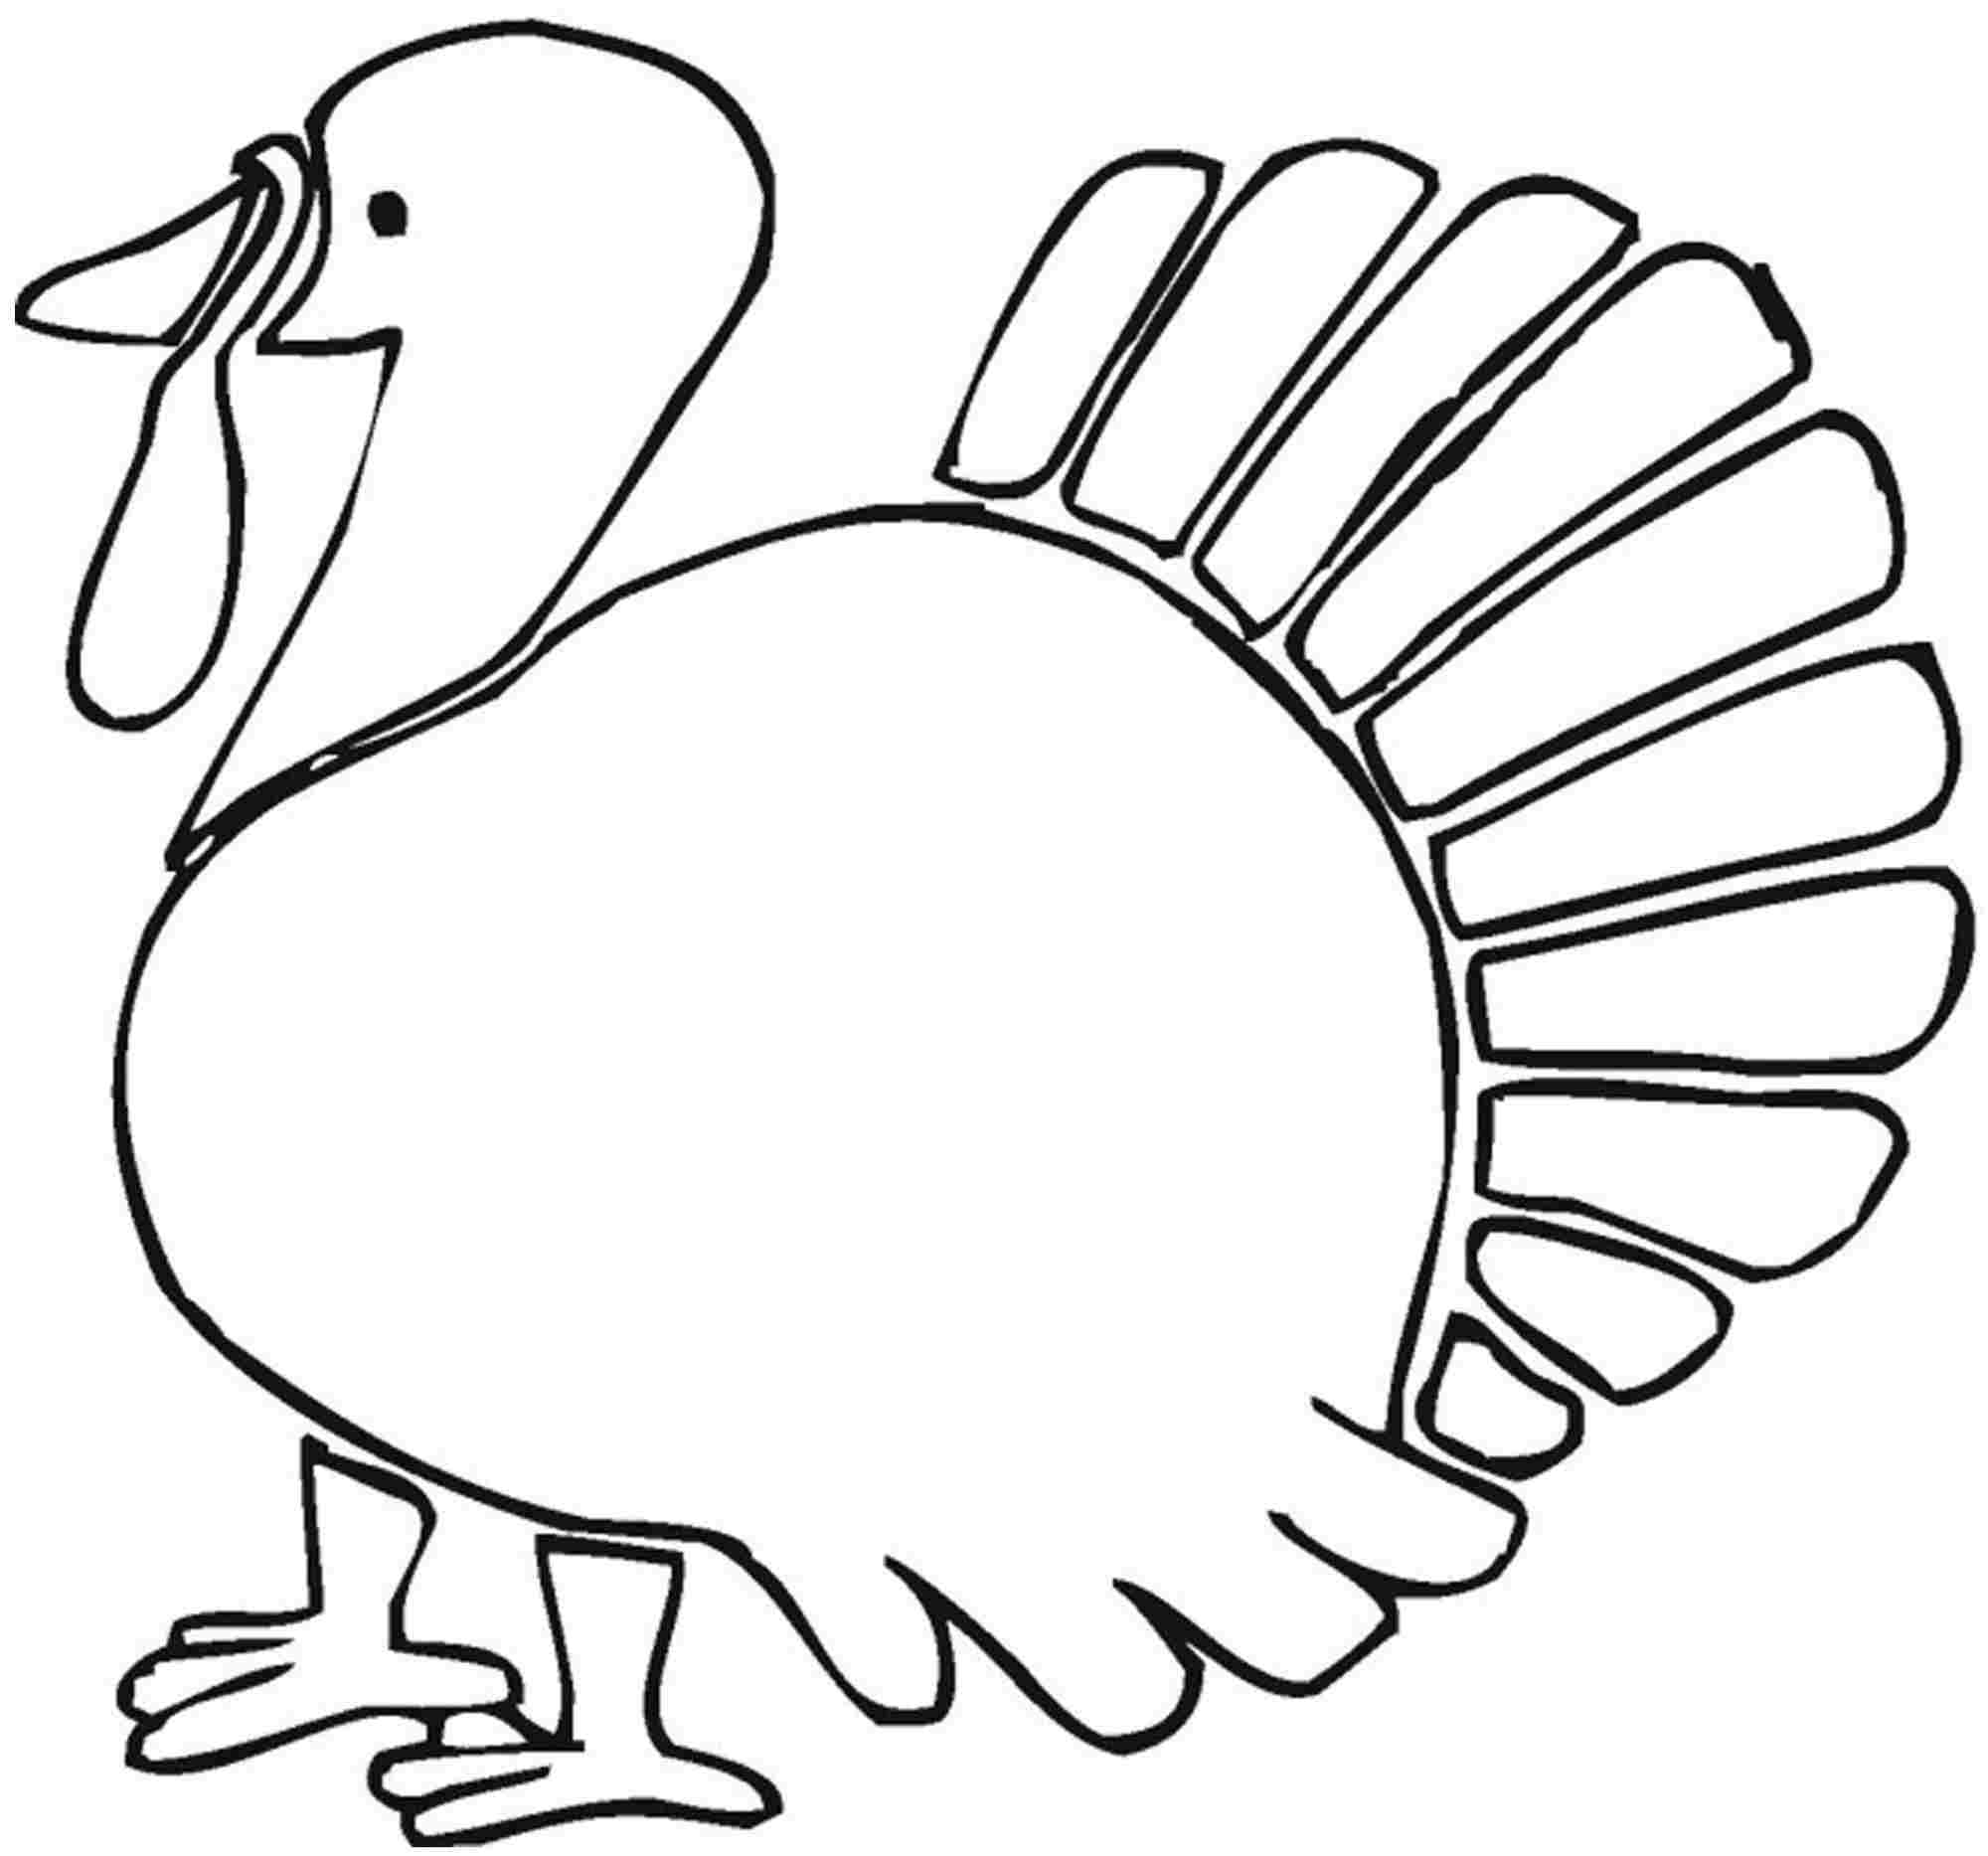 2000x1867 coloring pages amusing coloring pages draw a thanksgiving turkey - Free Coloring Pages Of Turkeys 3